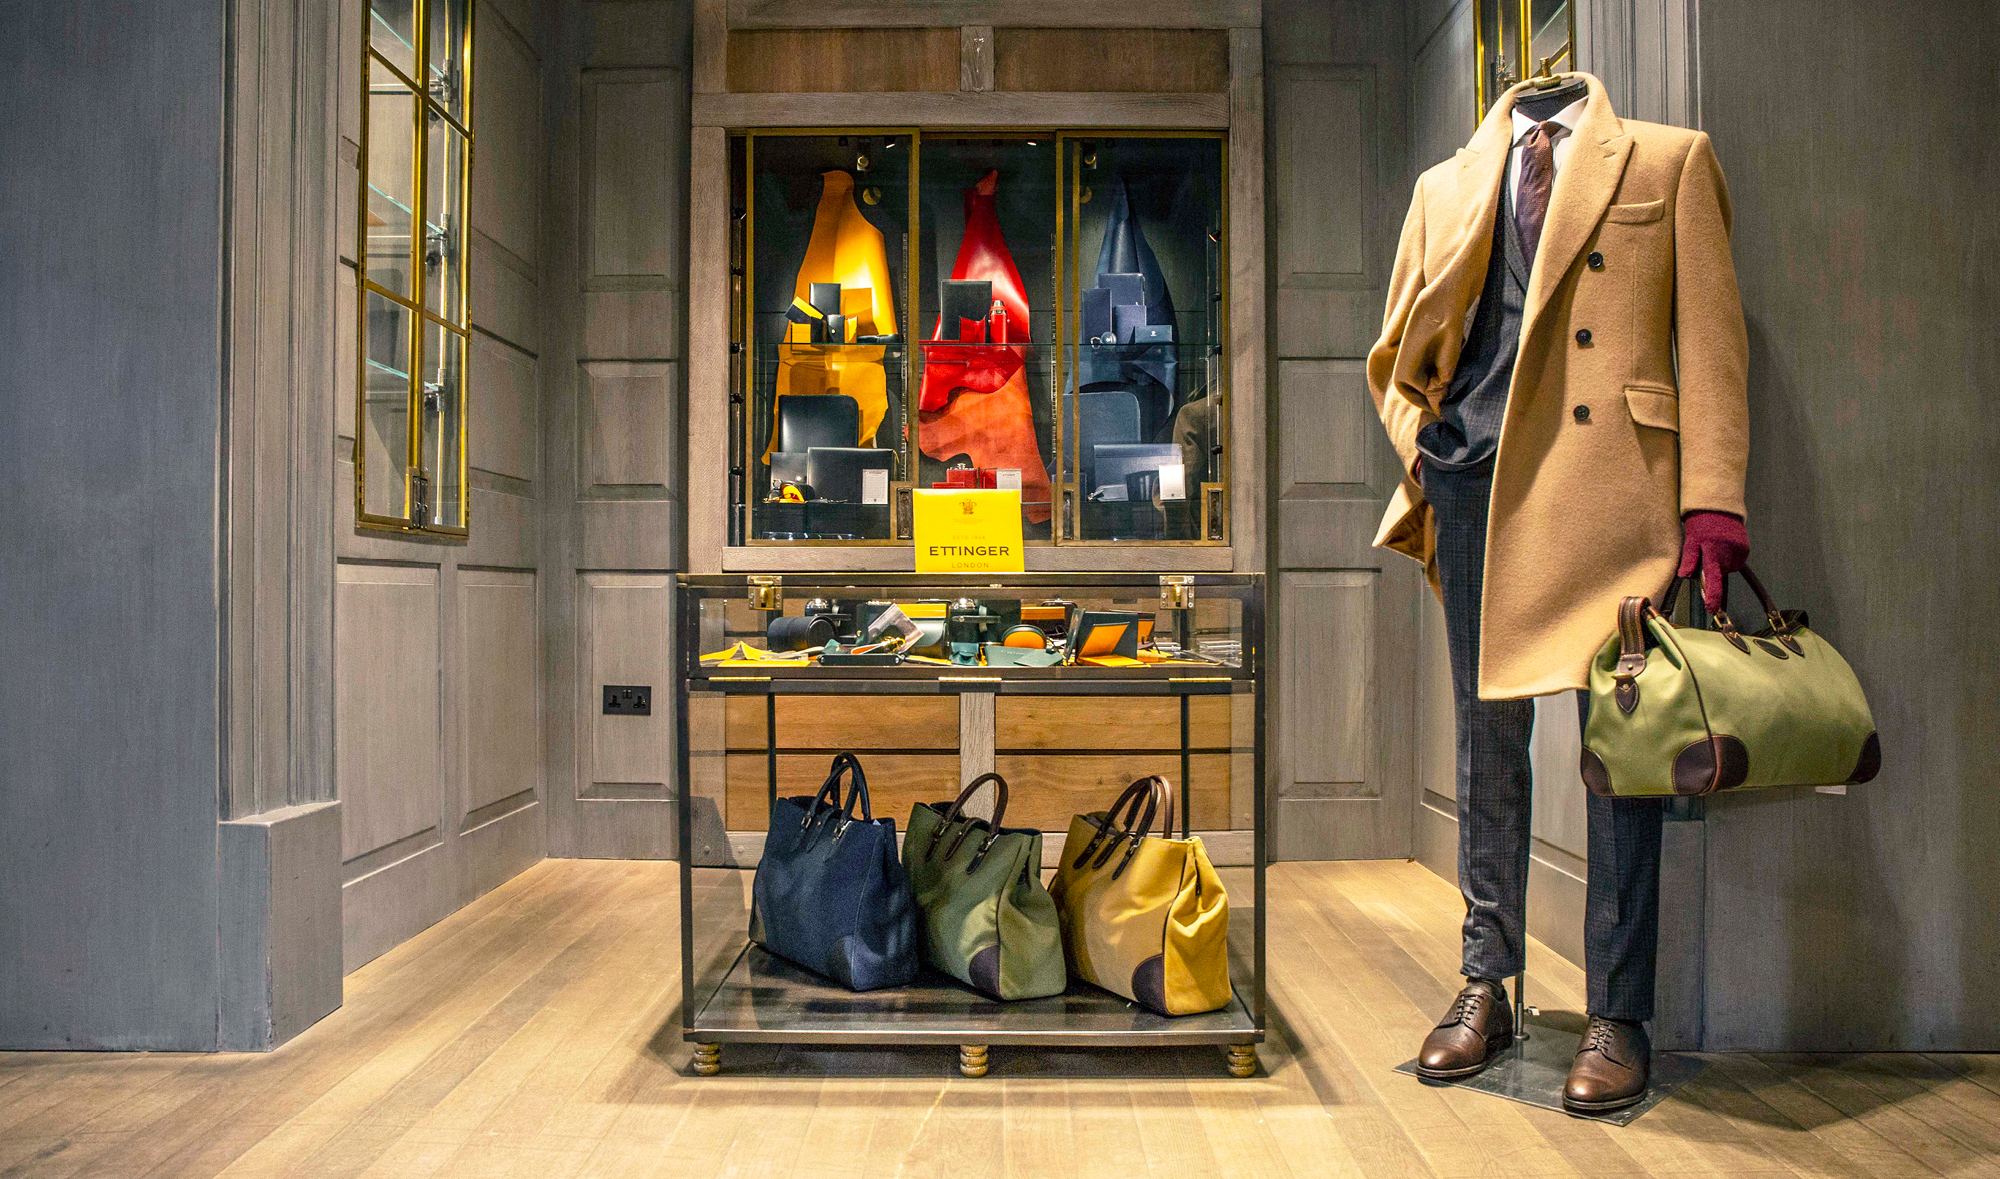 Ettinger Accessories Room at Gieves & Hawkes' flagship store at No.1 Savile Row